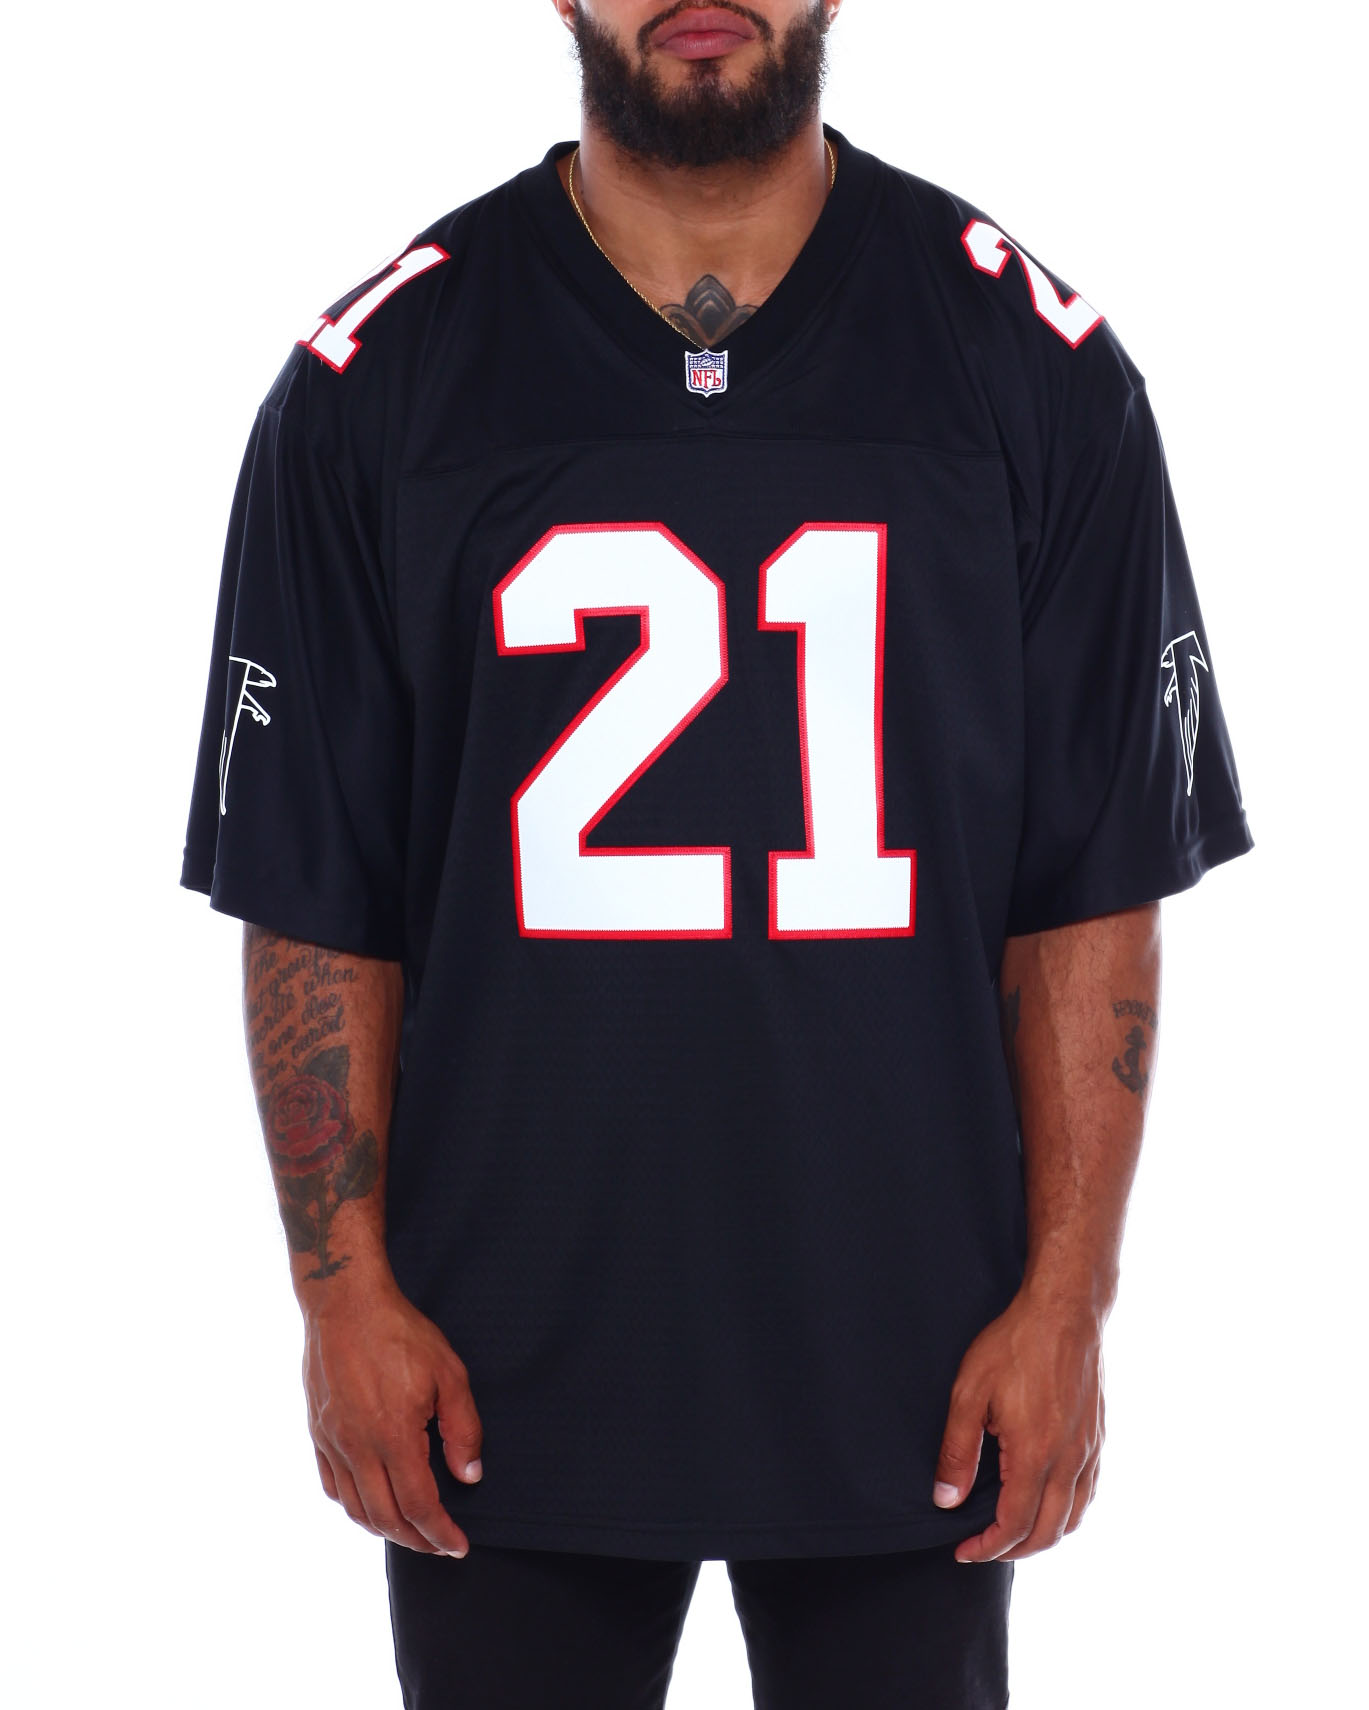 cheap for discount 6fbd6 f8bba Buy Deion Sanders NFL Legacy Jersey (B&T) Men's Shirts from ...